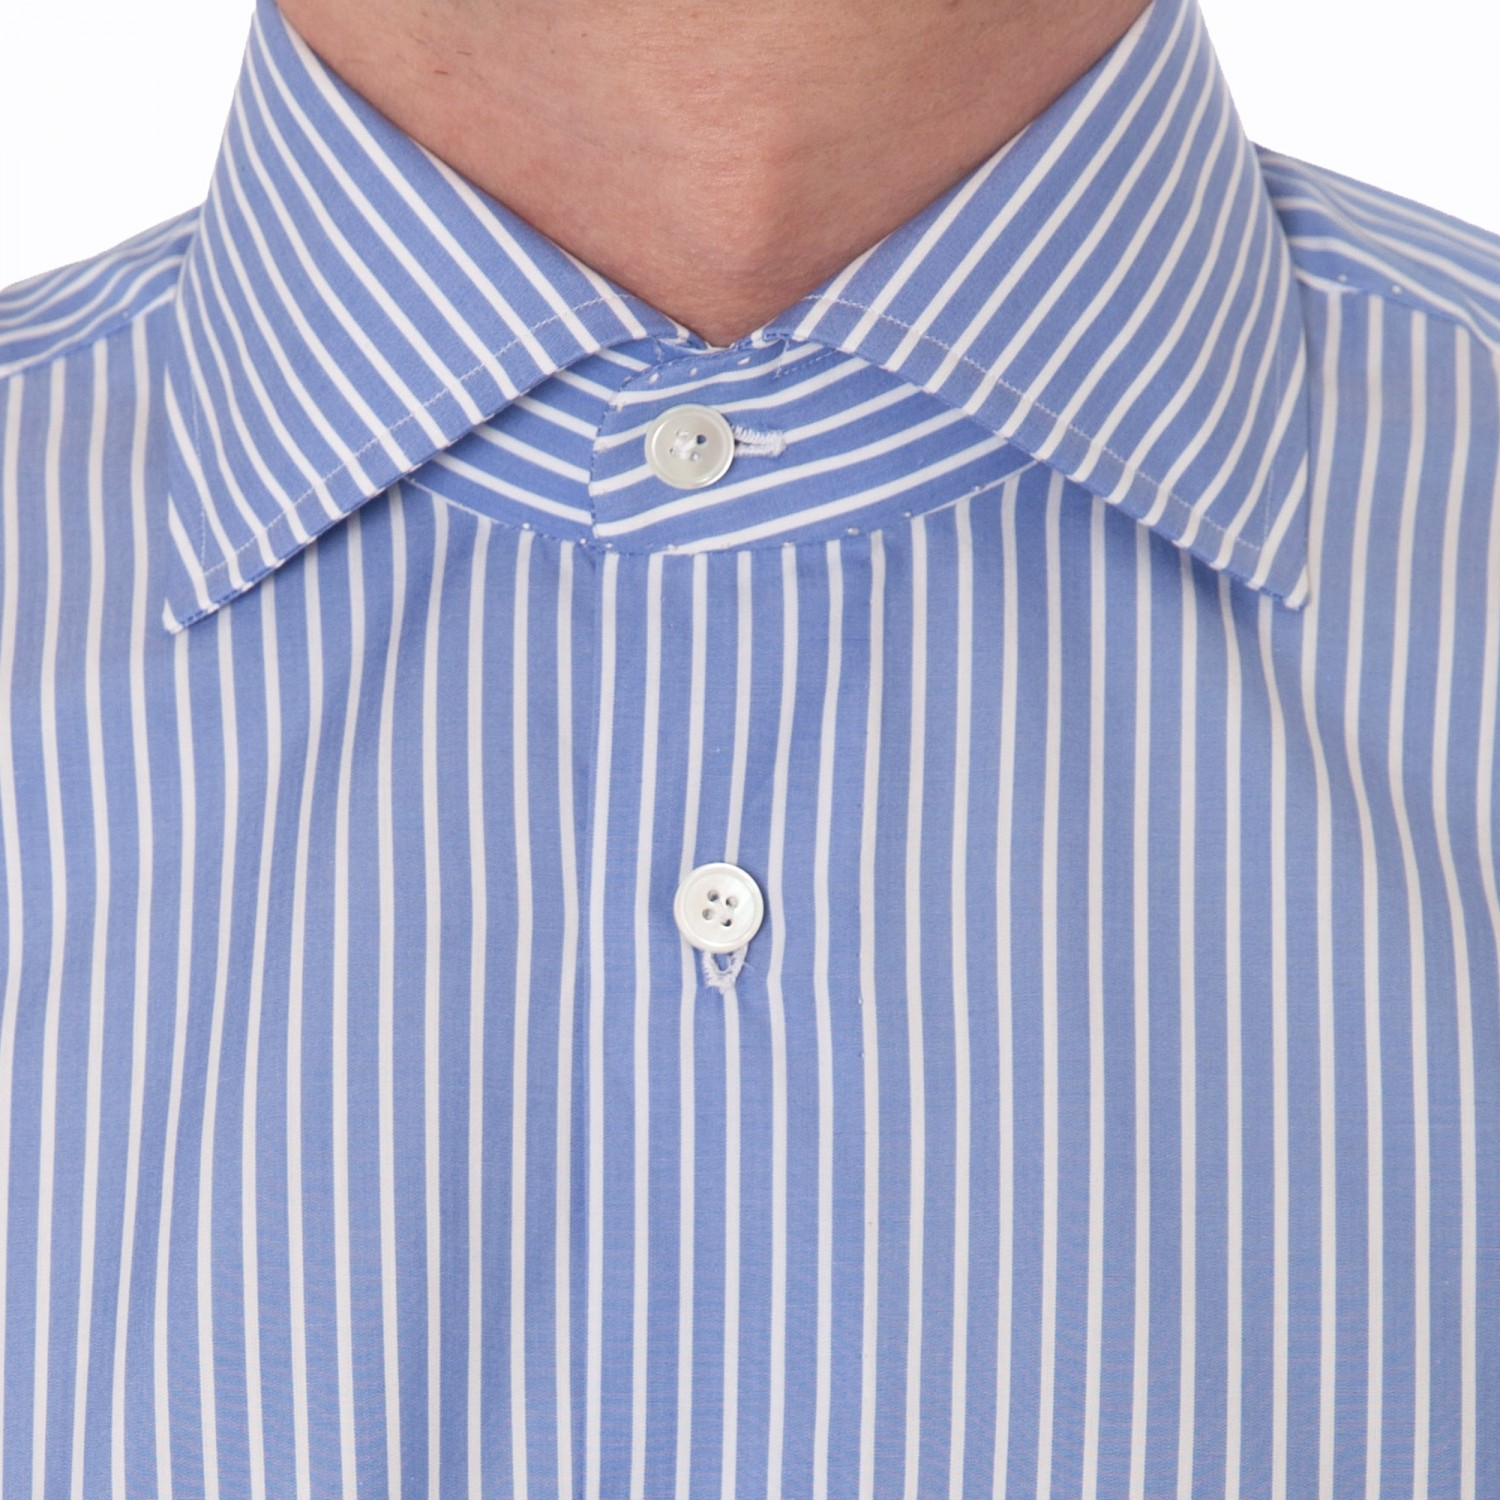 Stripes spread collar shirt blue white beige habilleur for Blue and white striped shirt with white collar